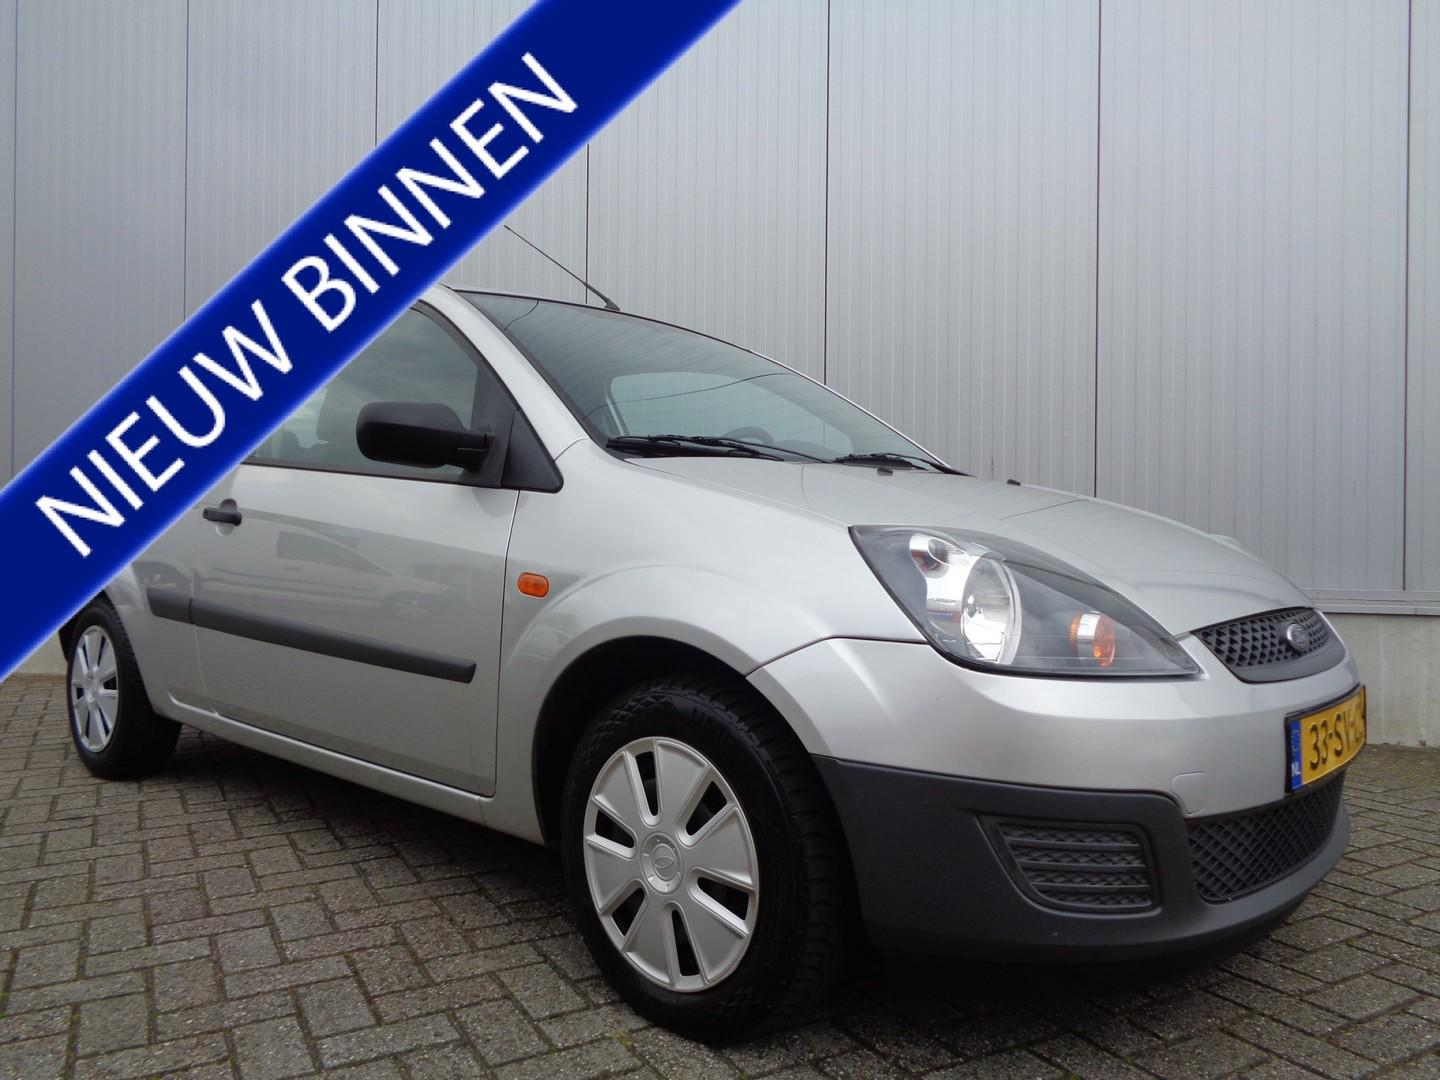 Ford Fiesta 1.3-8v style airco nw-model